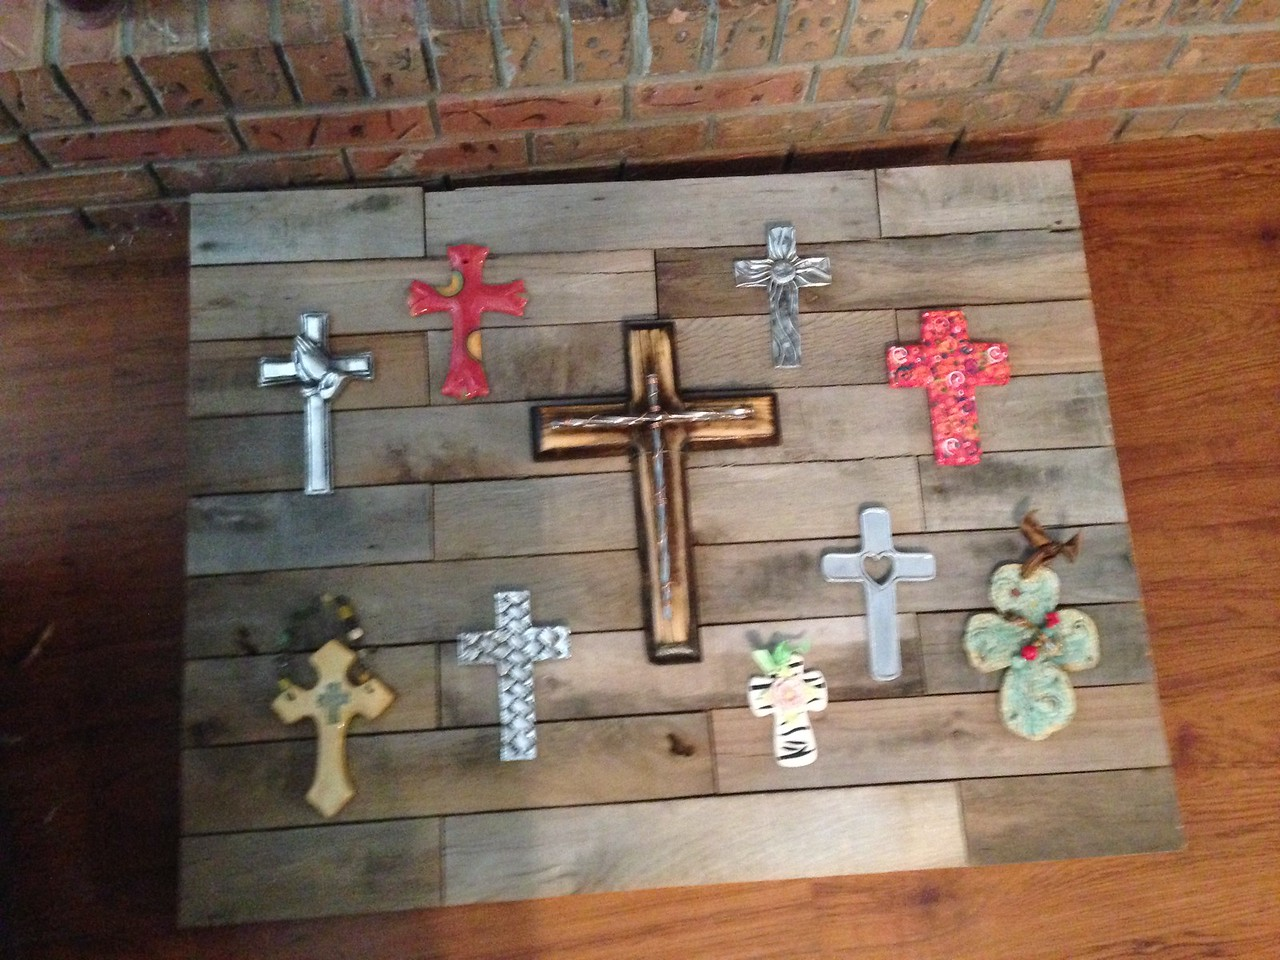 Fireplace cover made from old wooden pallets. My wife has dozens of crosses she collects, so I took a few of them and connected them to the cover using thin wire.